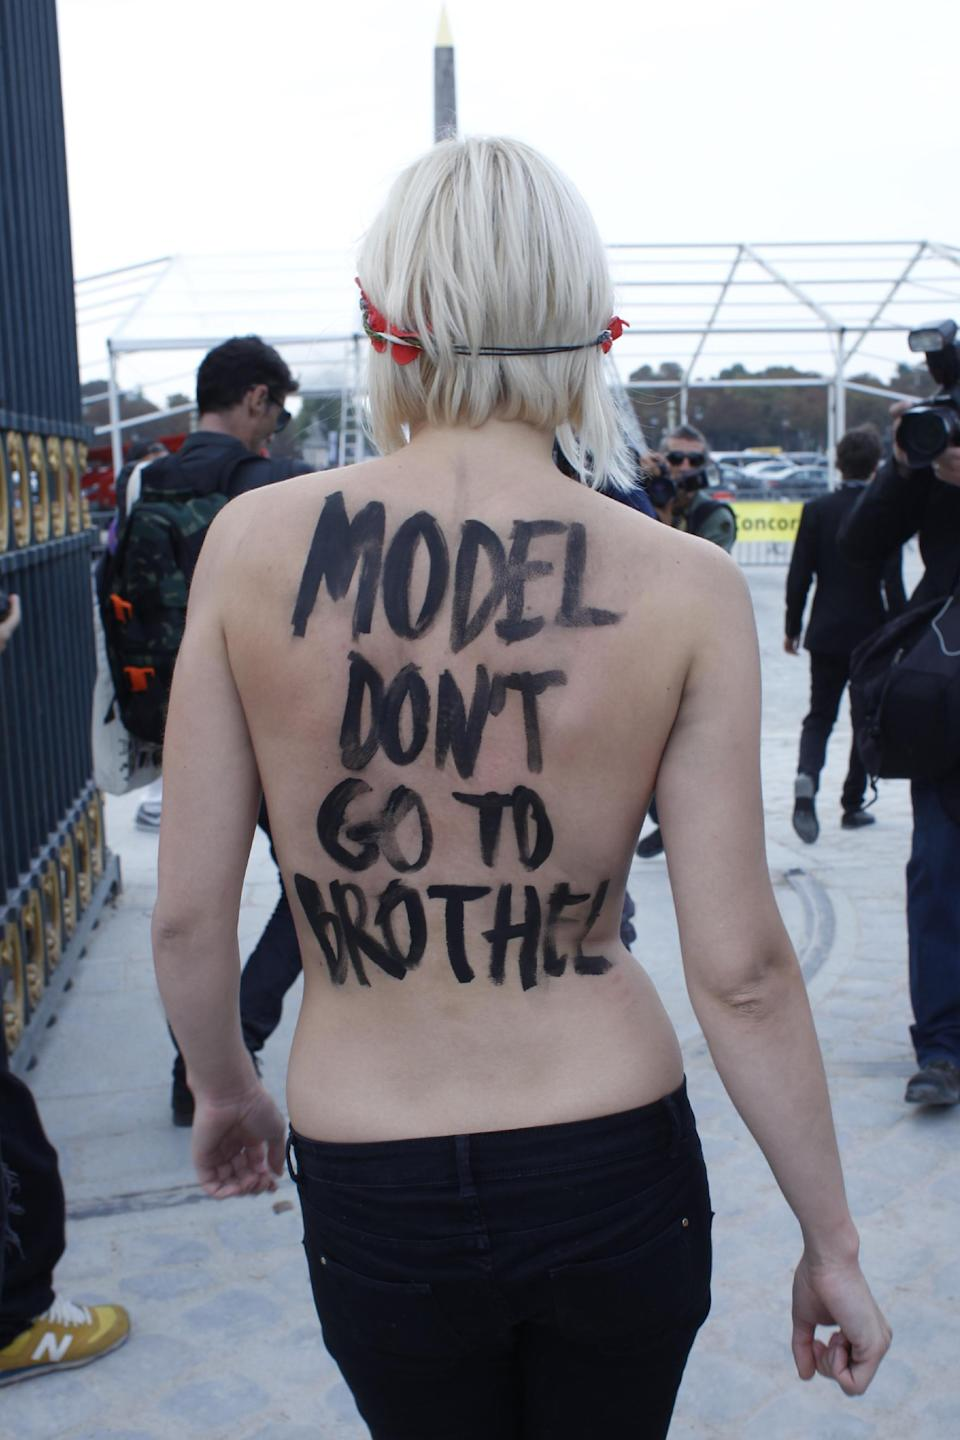 An activist of Femen, a feminist Ukrainian protest group, leaves the Tuileries Gardens after two of them were removed by security staff while disturbing the presentation of Nina Ricci's ready-to-wear Spring/Summer 2014 fashion collection Thursday, Sept. 26, 2013 in Paris. (AP Photo/Thibault Camus)